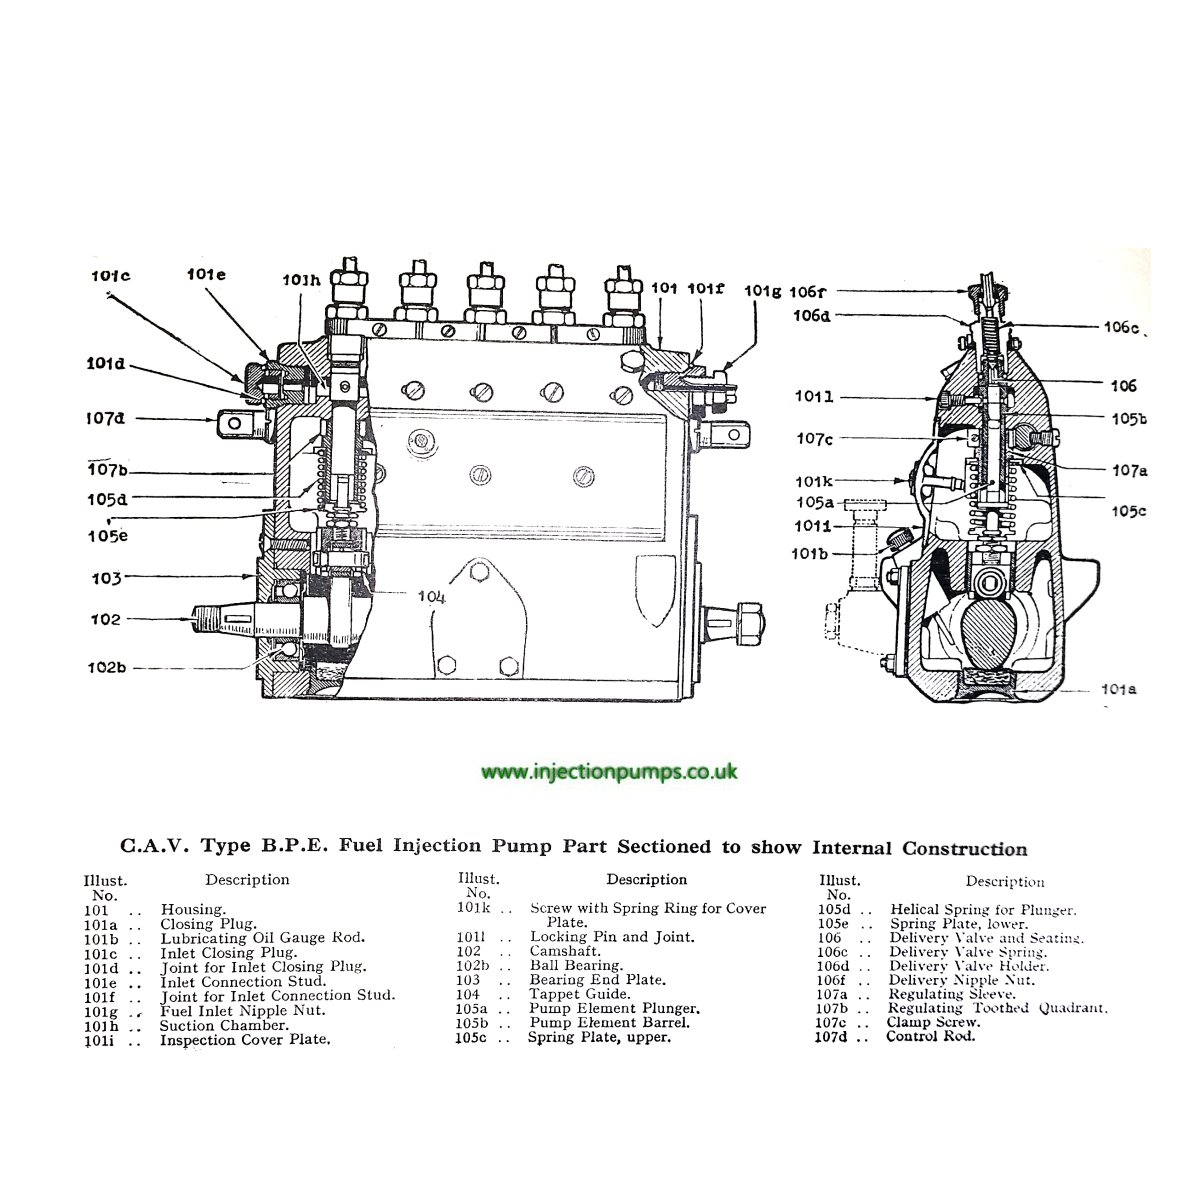 stanadyne injection pump diagram